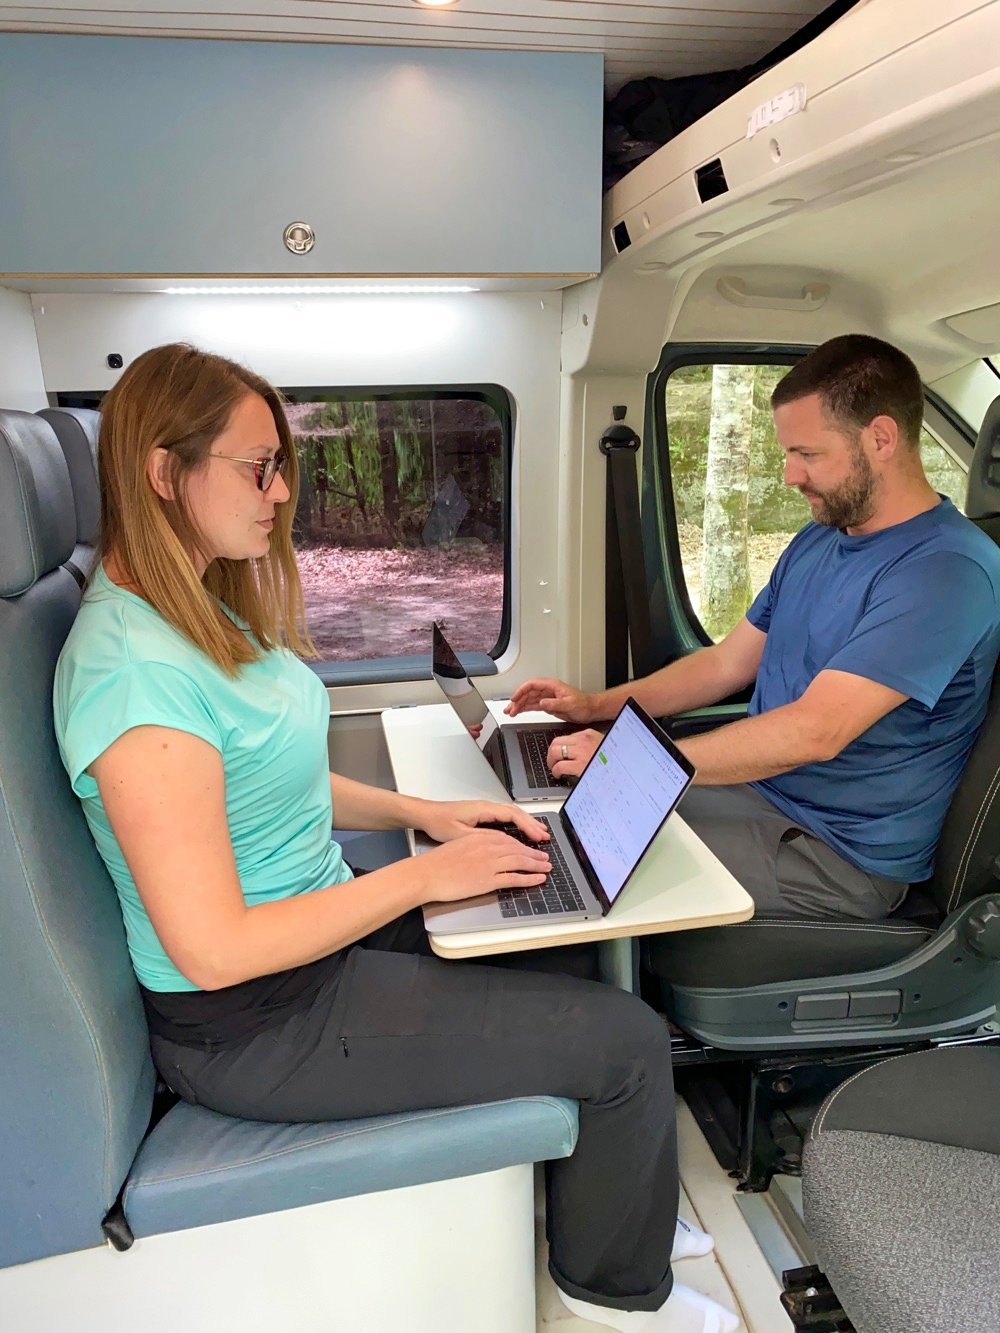 working from a campervan on the computer